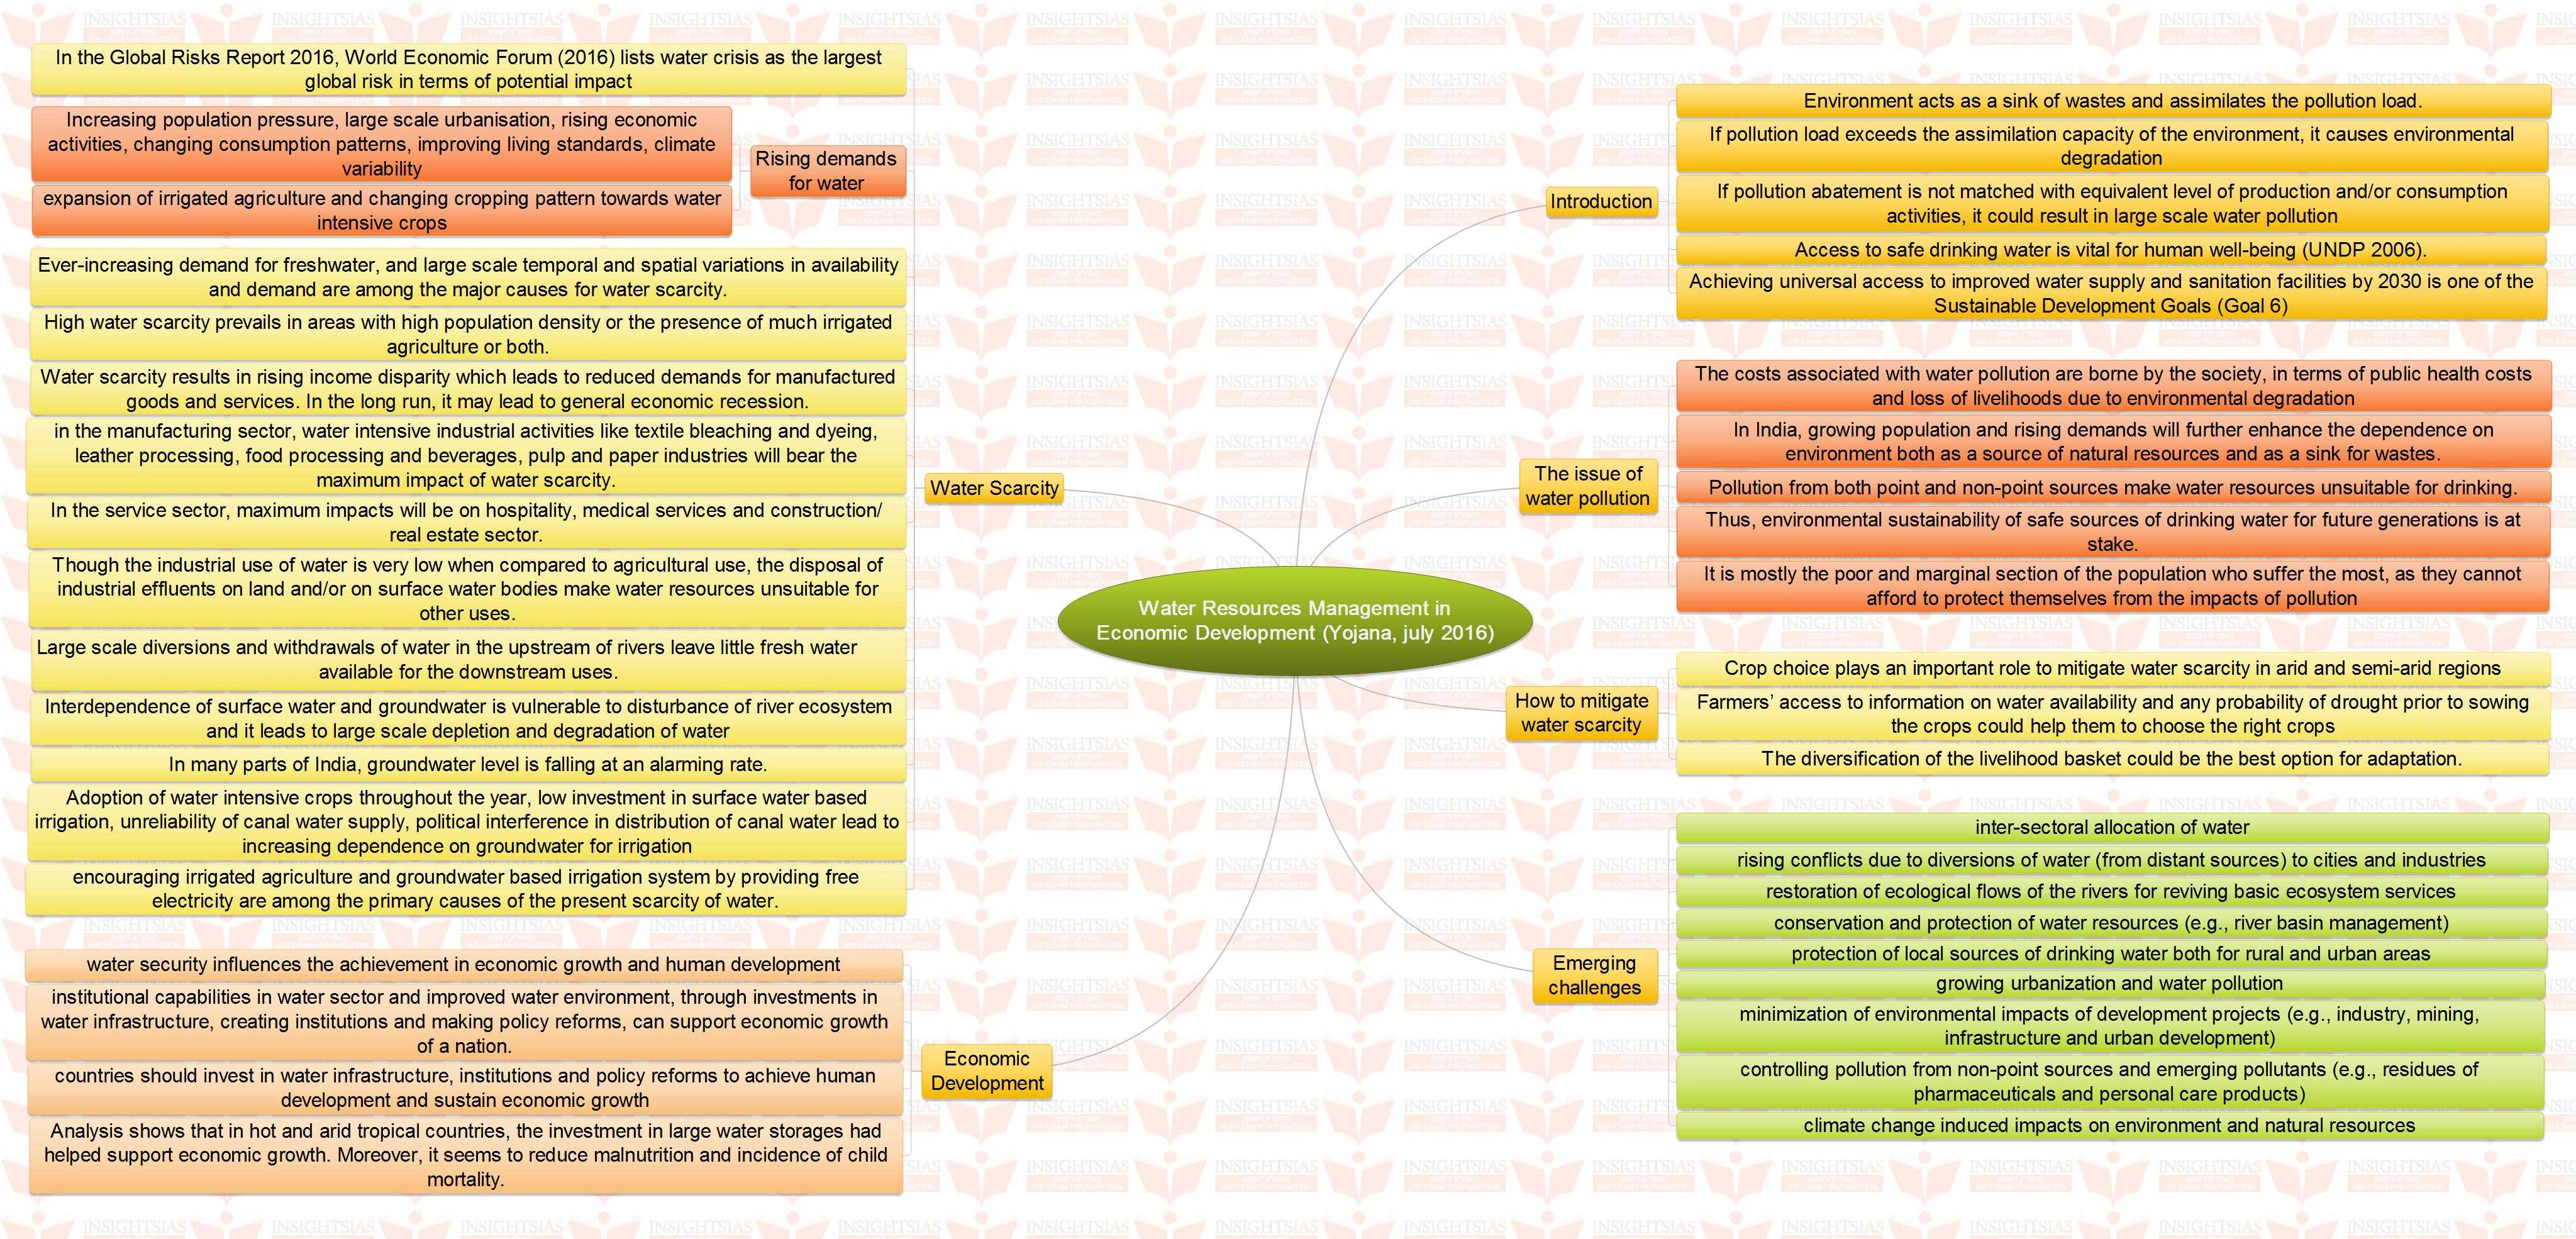 insights mindmaps water resources management in economic insights mindmaps water resources management in economic development and creating water abundance through conservation and judicious use